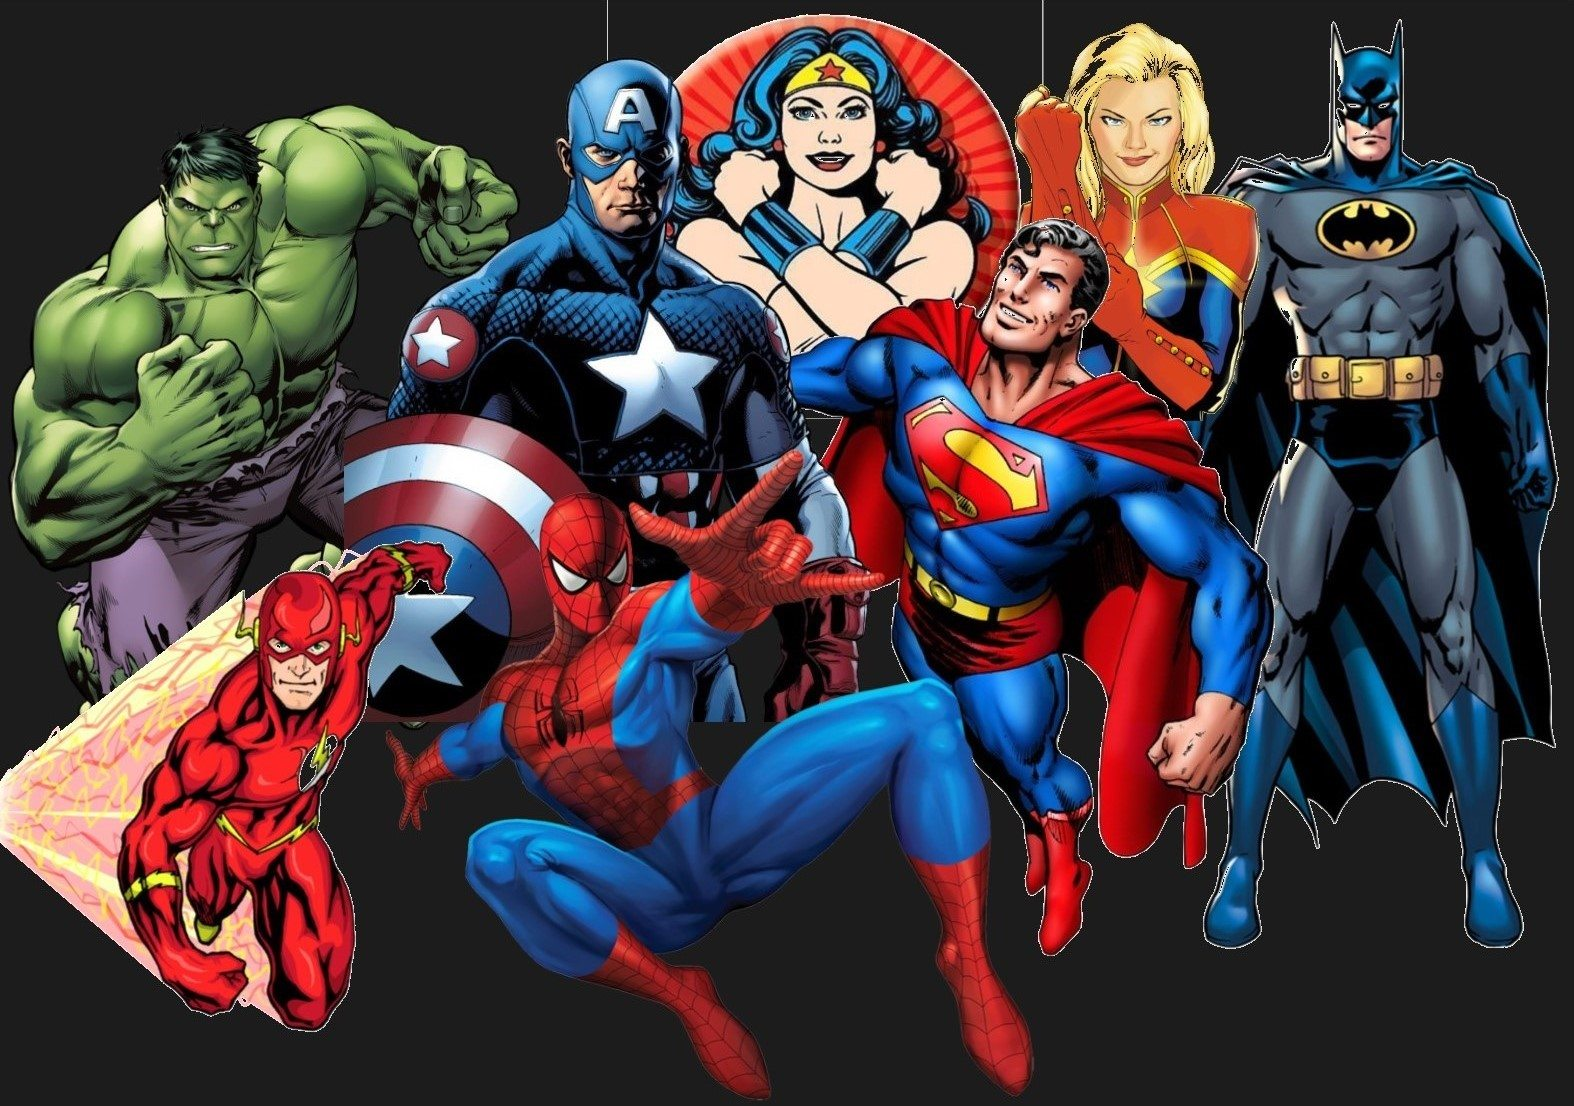 5 Favorite Superhero Movies